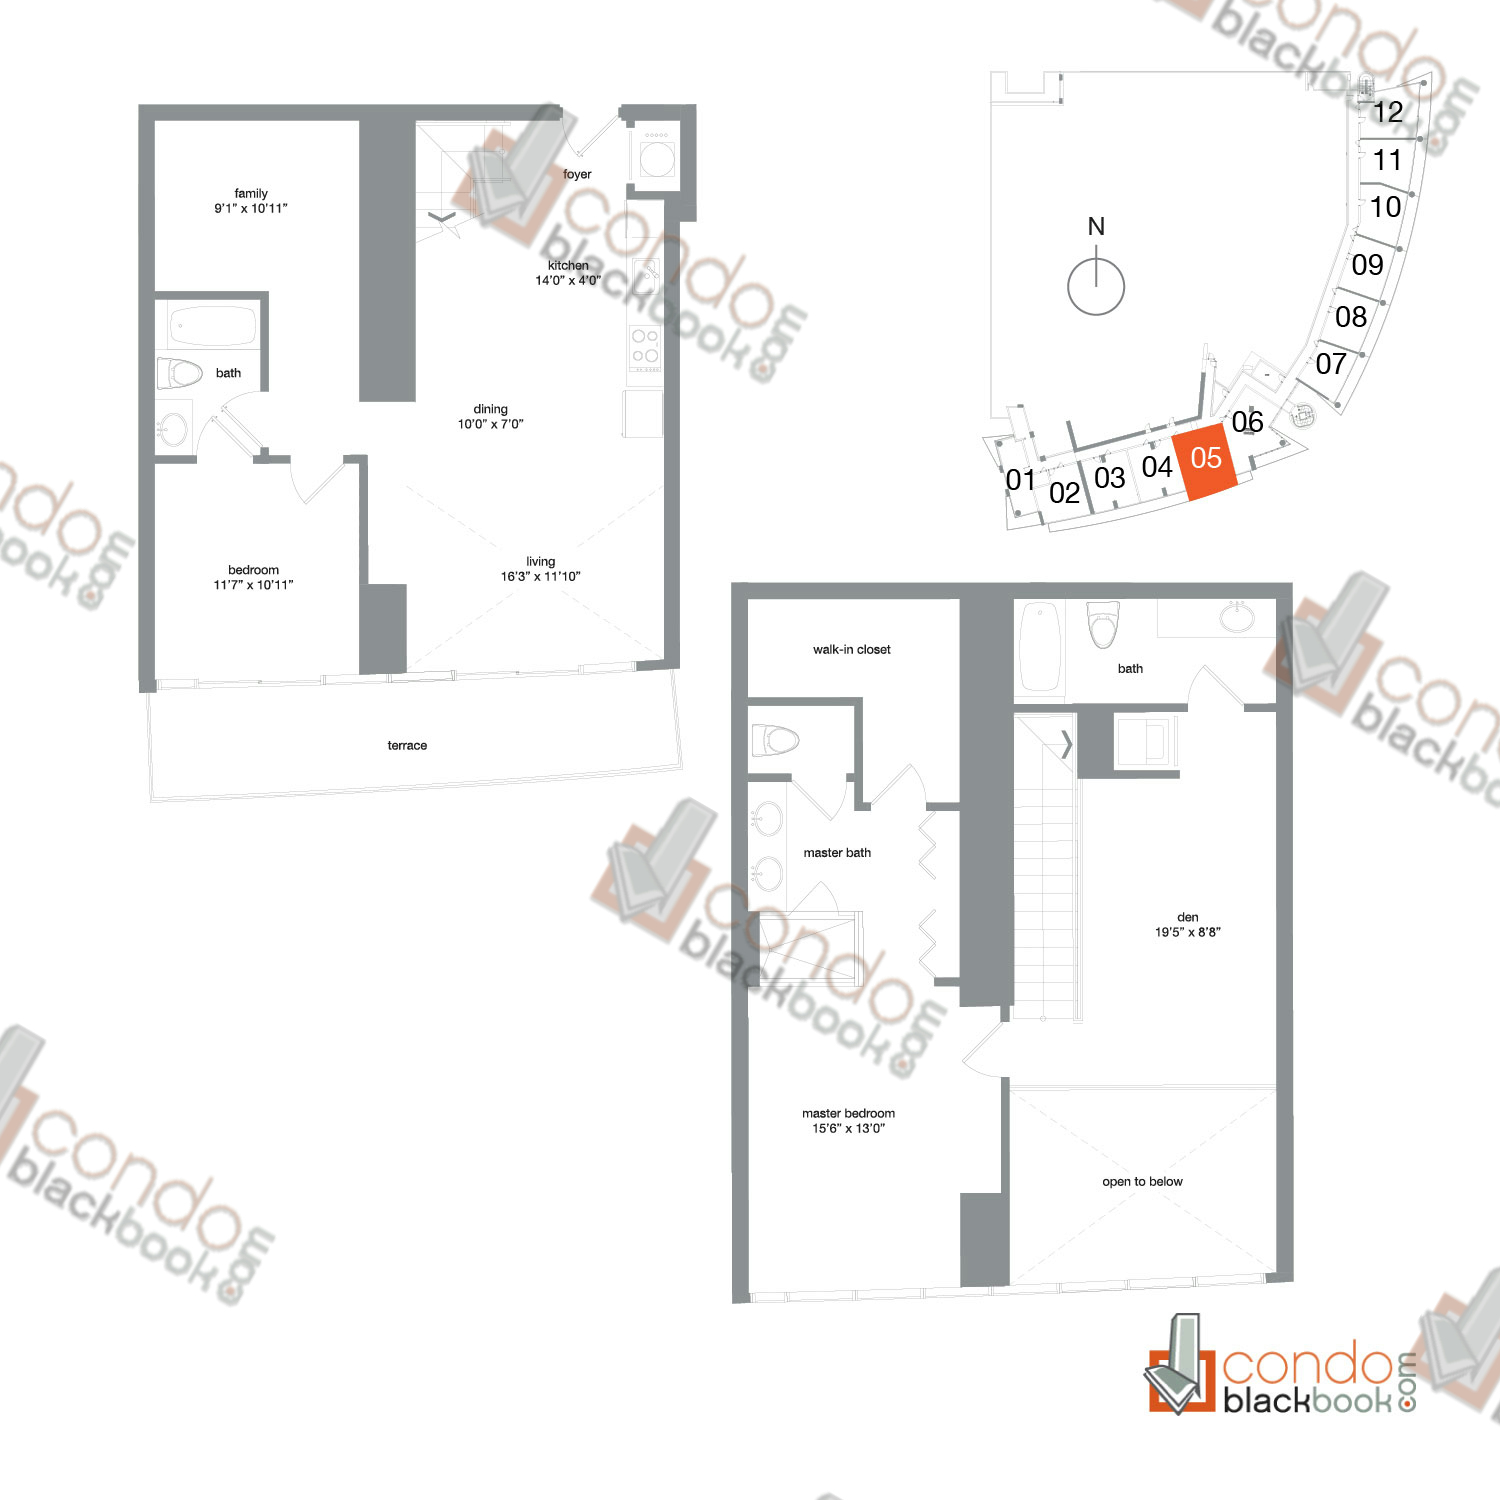 Floor plan for Mint Miami River Miami, model TH05, line 05, 2/3+Den+Family bedrooms, 1,683 sq ft